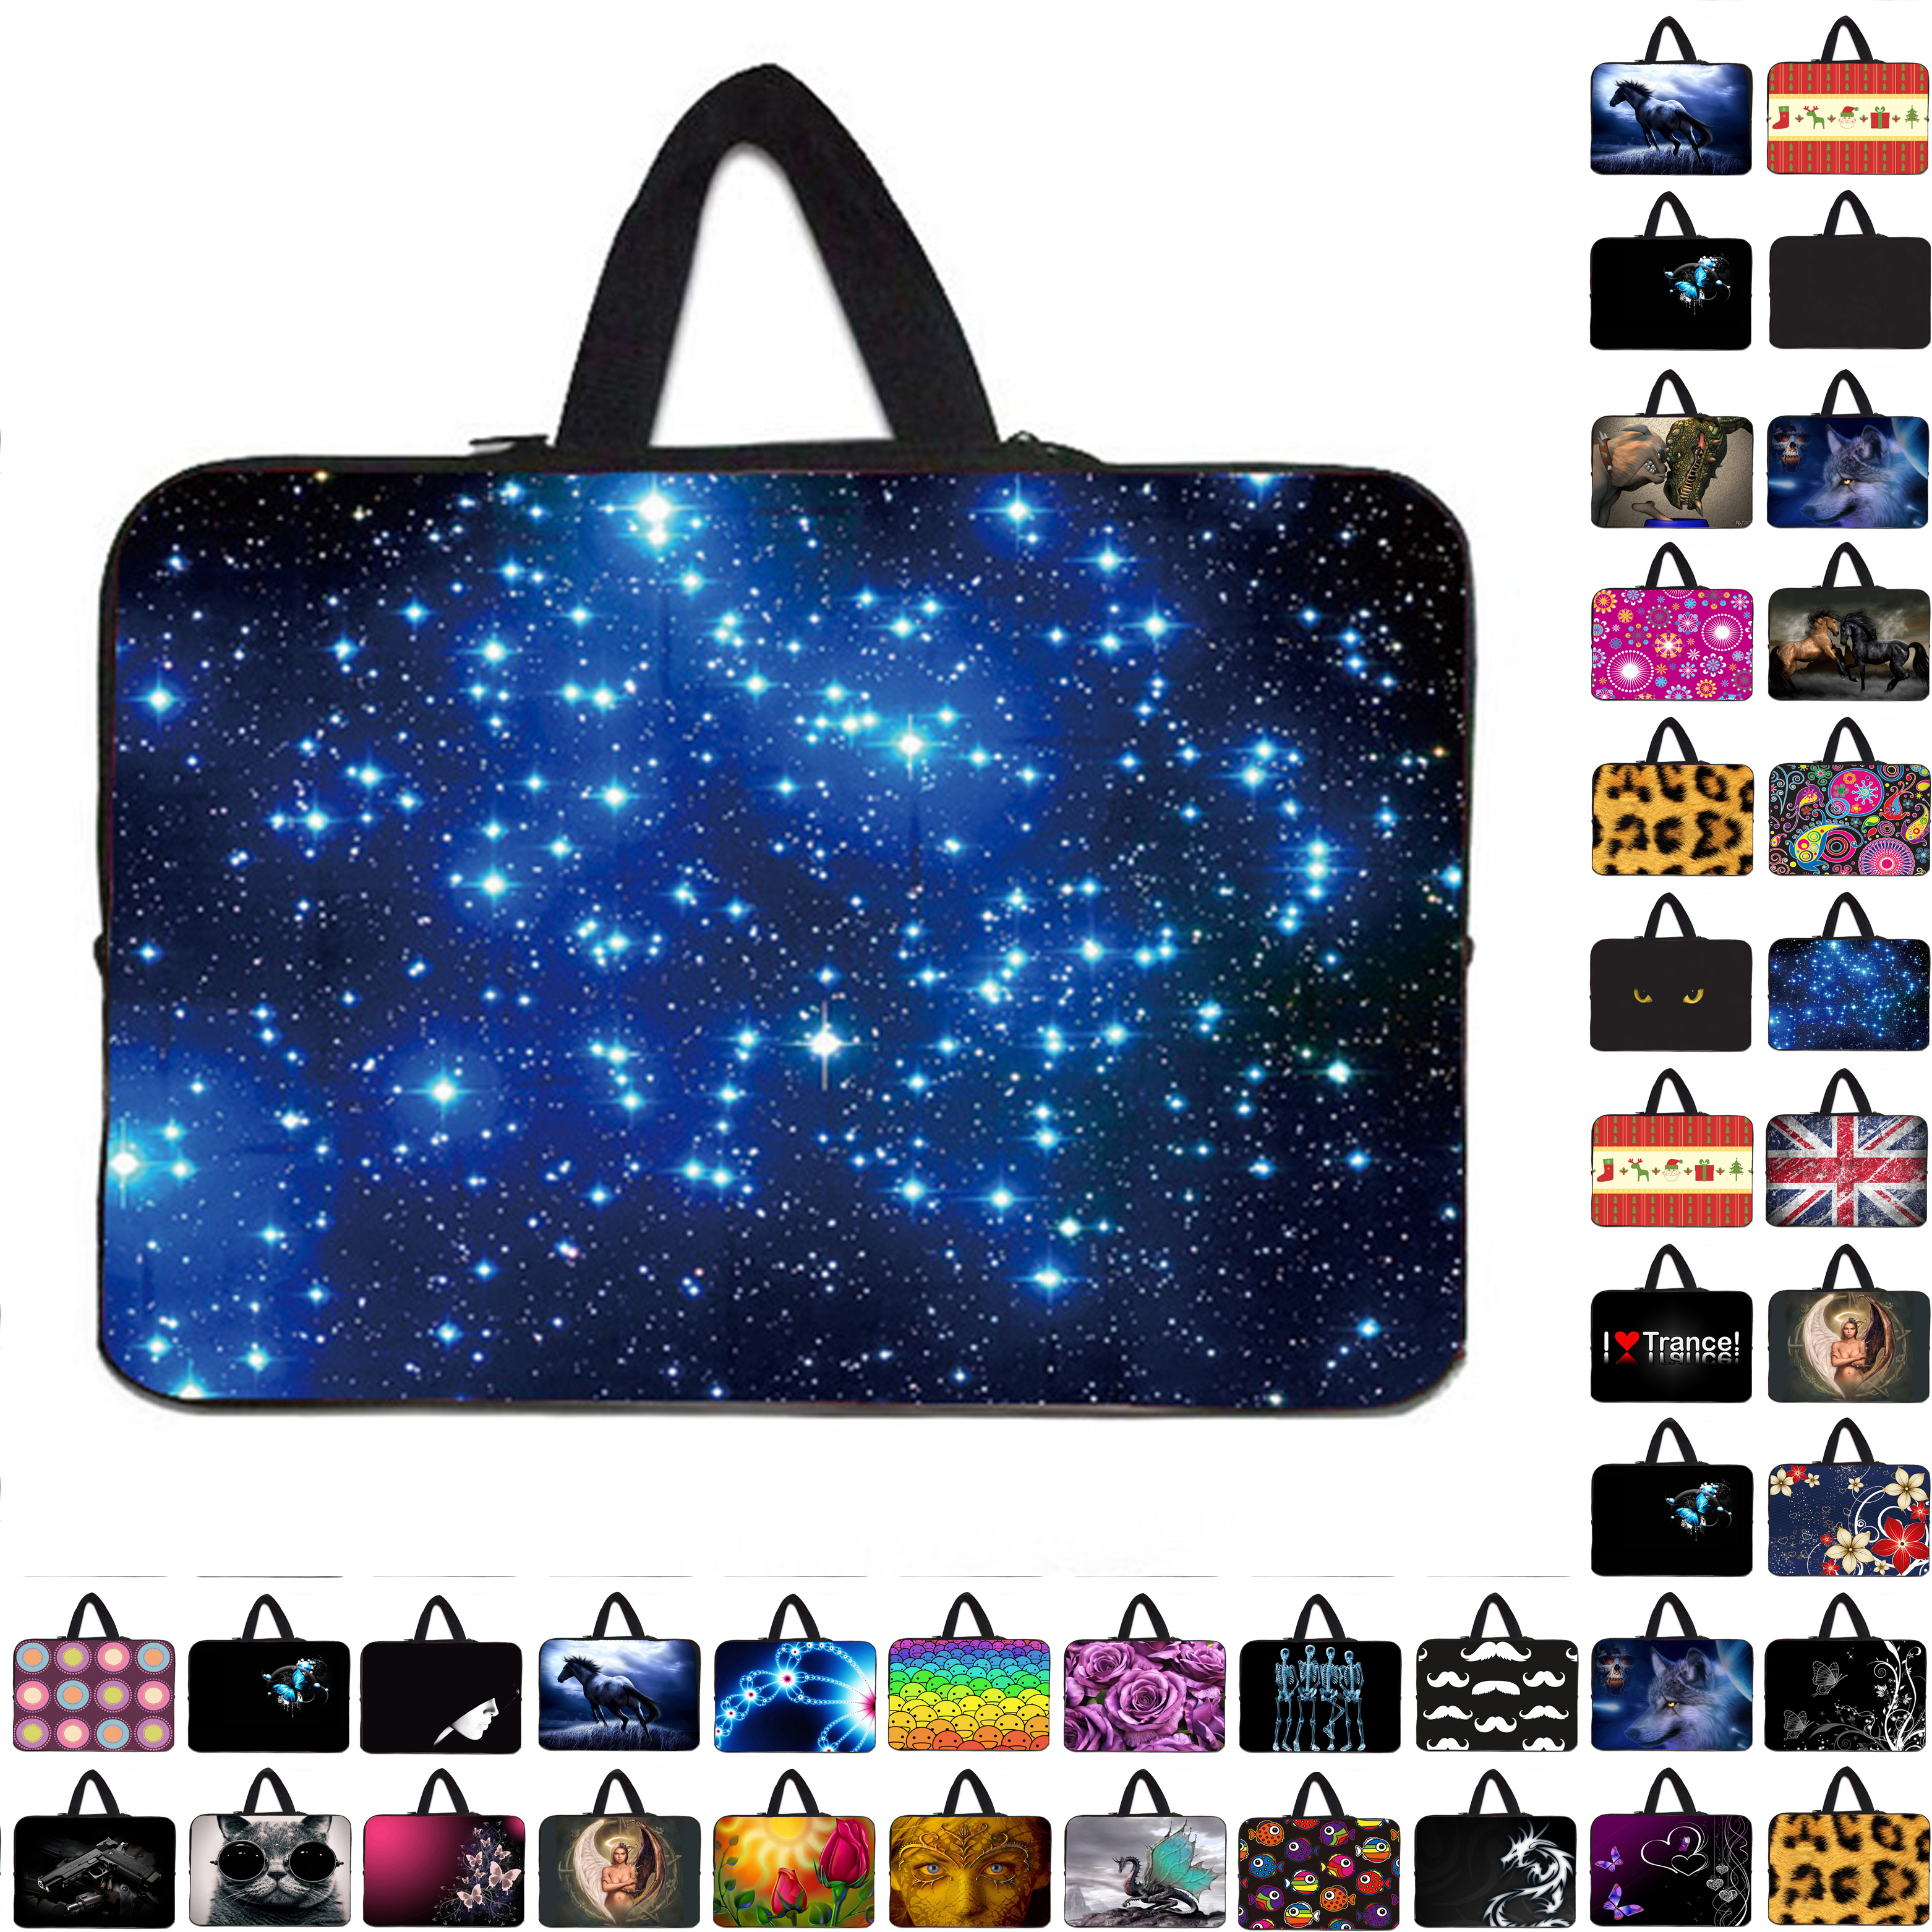 """Waterproof Notebook PC Sleeve Bag Carry Cases Cover Pouch Protector For 7"""" 10"""" 12"""" 13 14 15 15.4 17 inch Computer Laptop PC(China (Mainland))"""